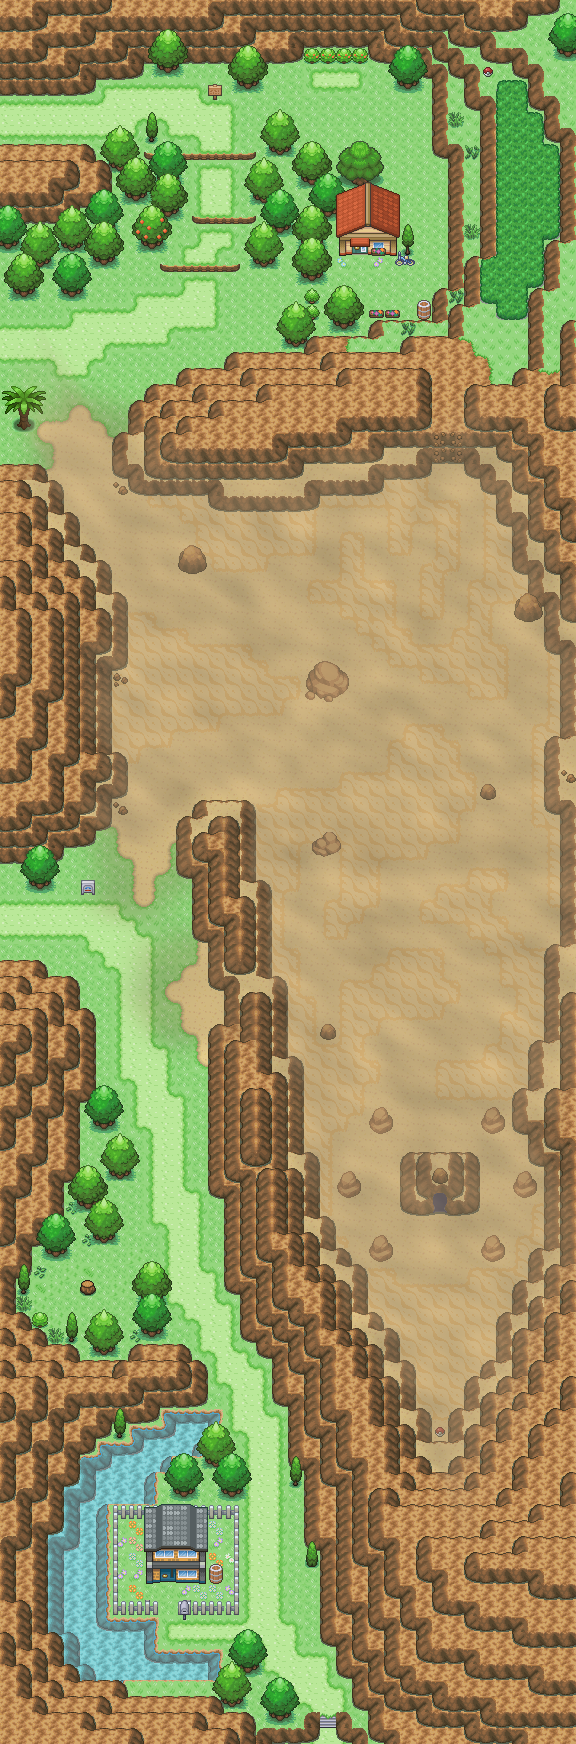 Pokémon-Map: Route 111 - Remake